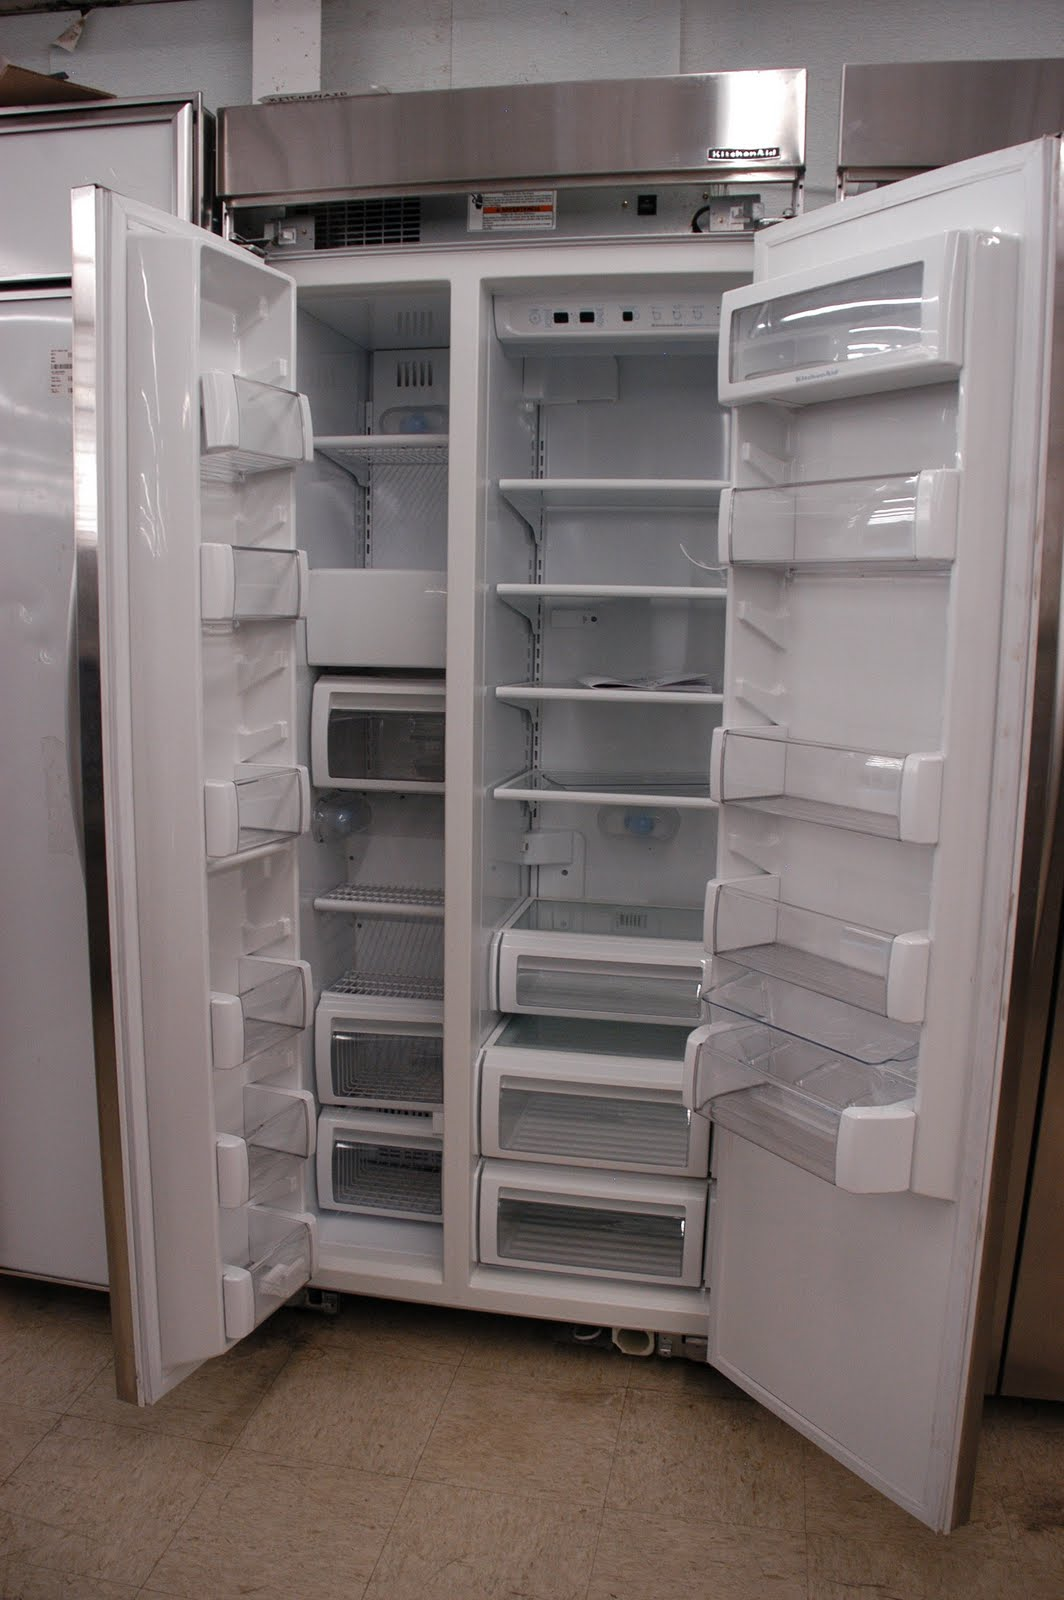 Kitchenaid Refrigerator Side By Side appliance direct video blog: kitchenaid stainless steel 20.9 cu